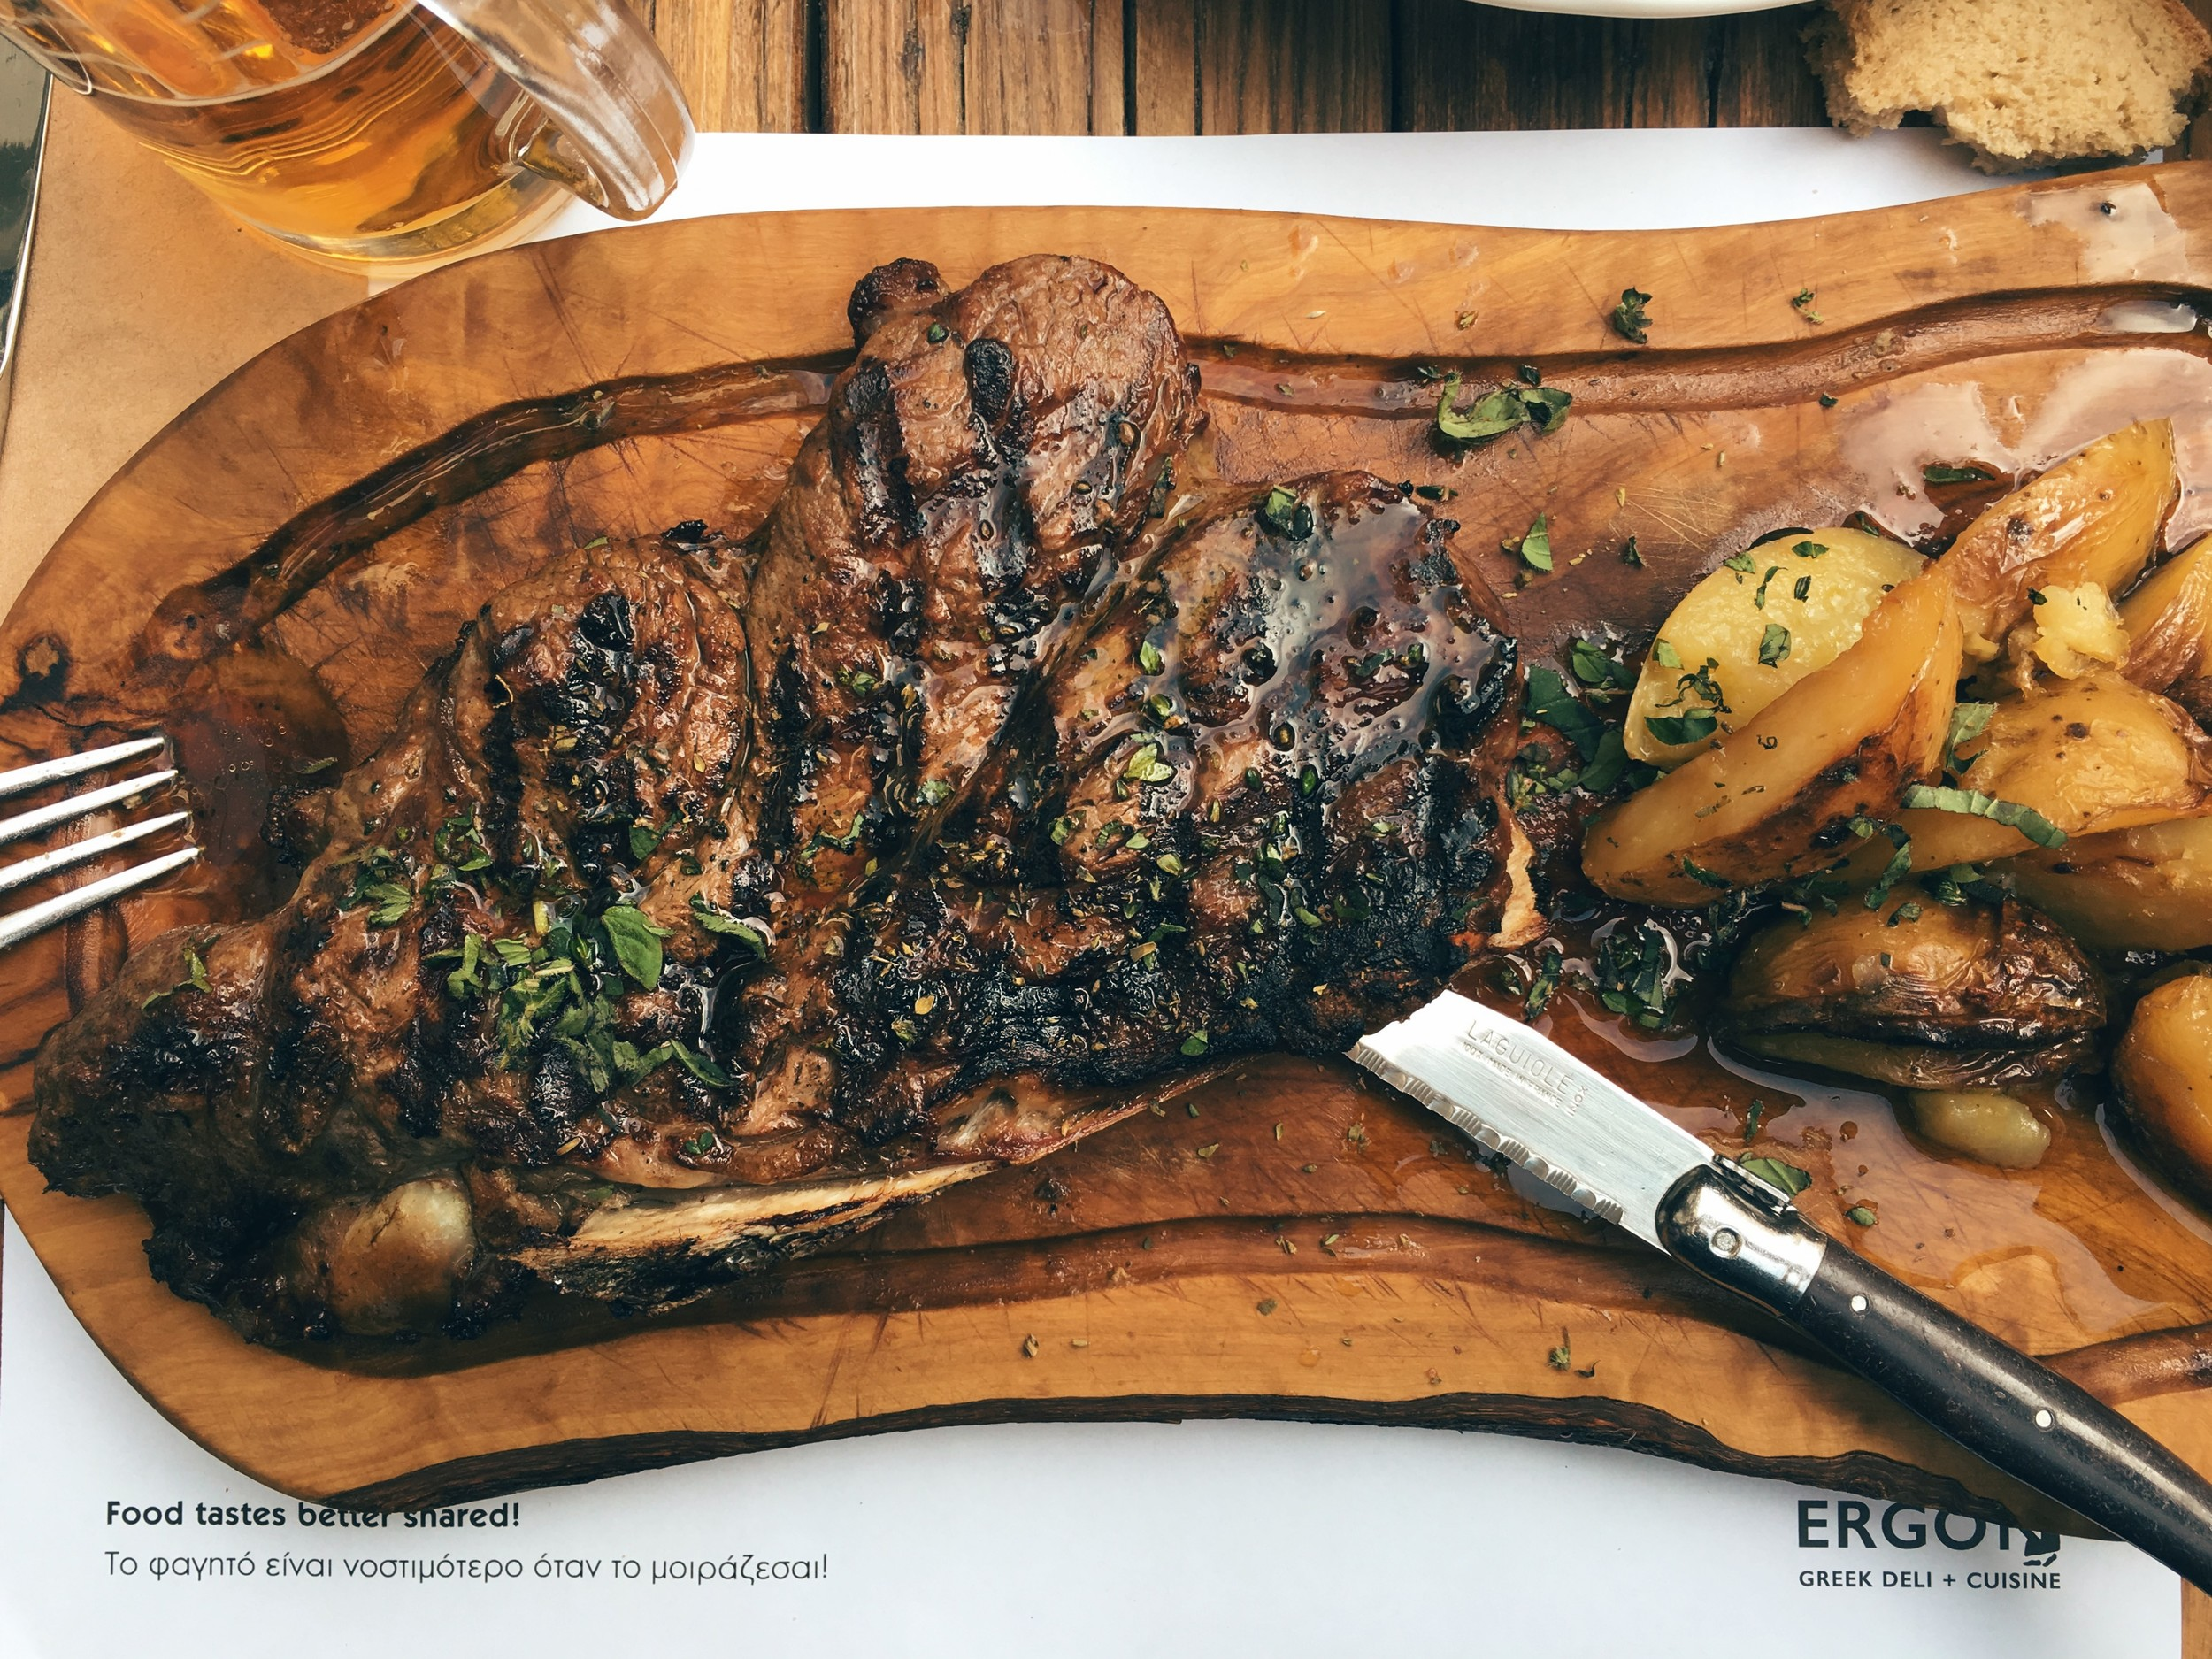 Rib-eye steak with oven potatoes, served with a touch of truffle oil. Served at Ergon